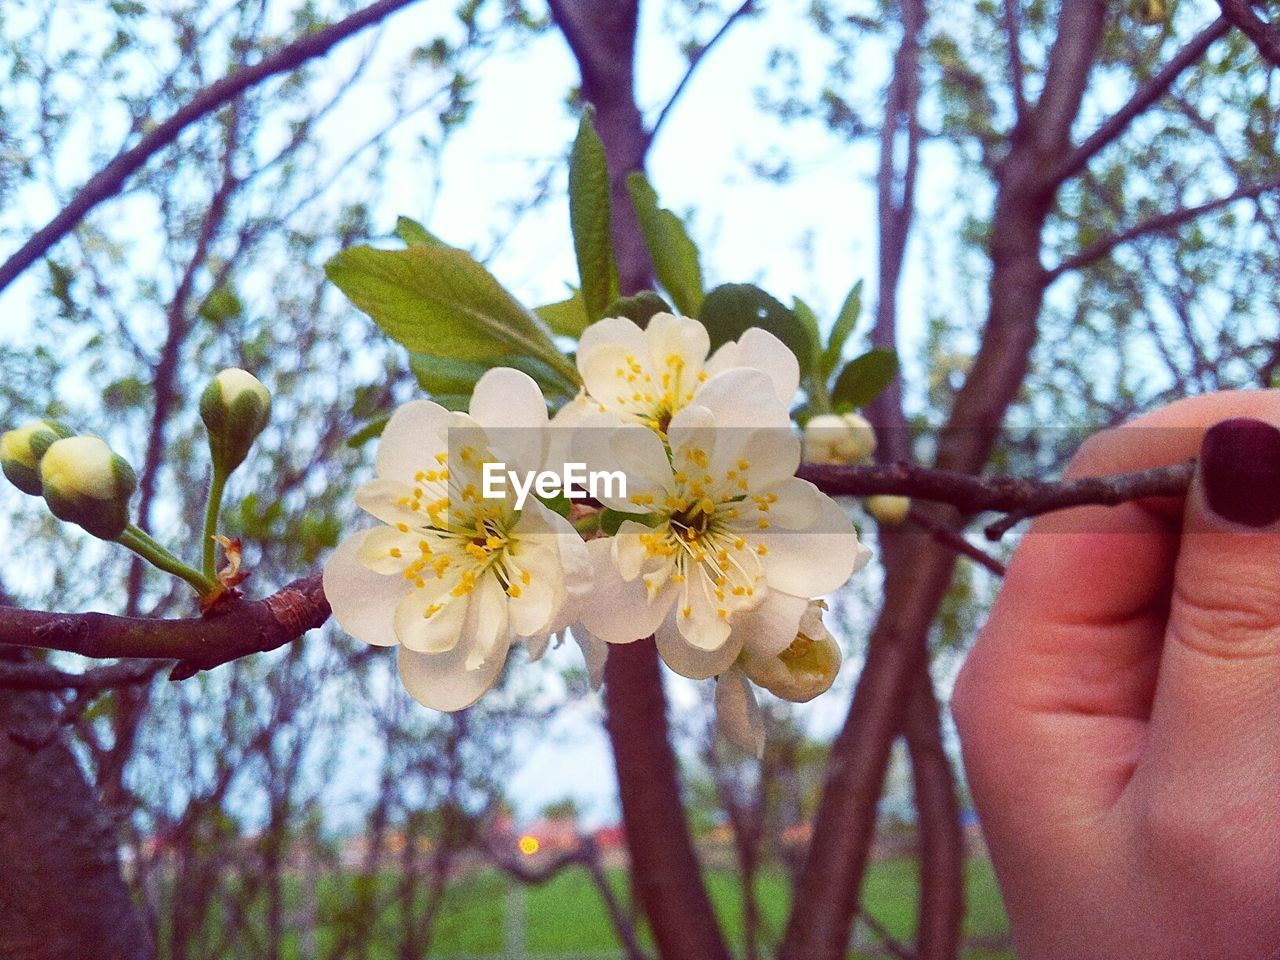 flower, tree, beauty in nature, nature, fragility, branch, human hand, petal, growth, day, outdoors, flower head, springtime, freshness, human body part, focus on foreground, close-up, blooming, one person, sky, people